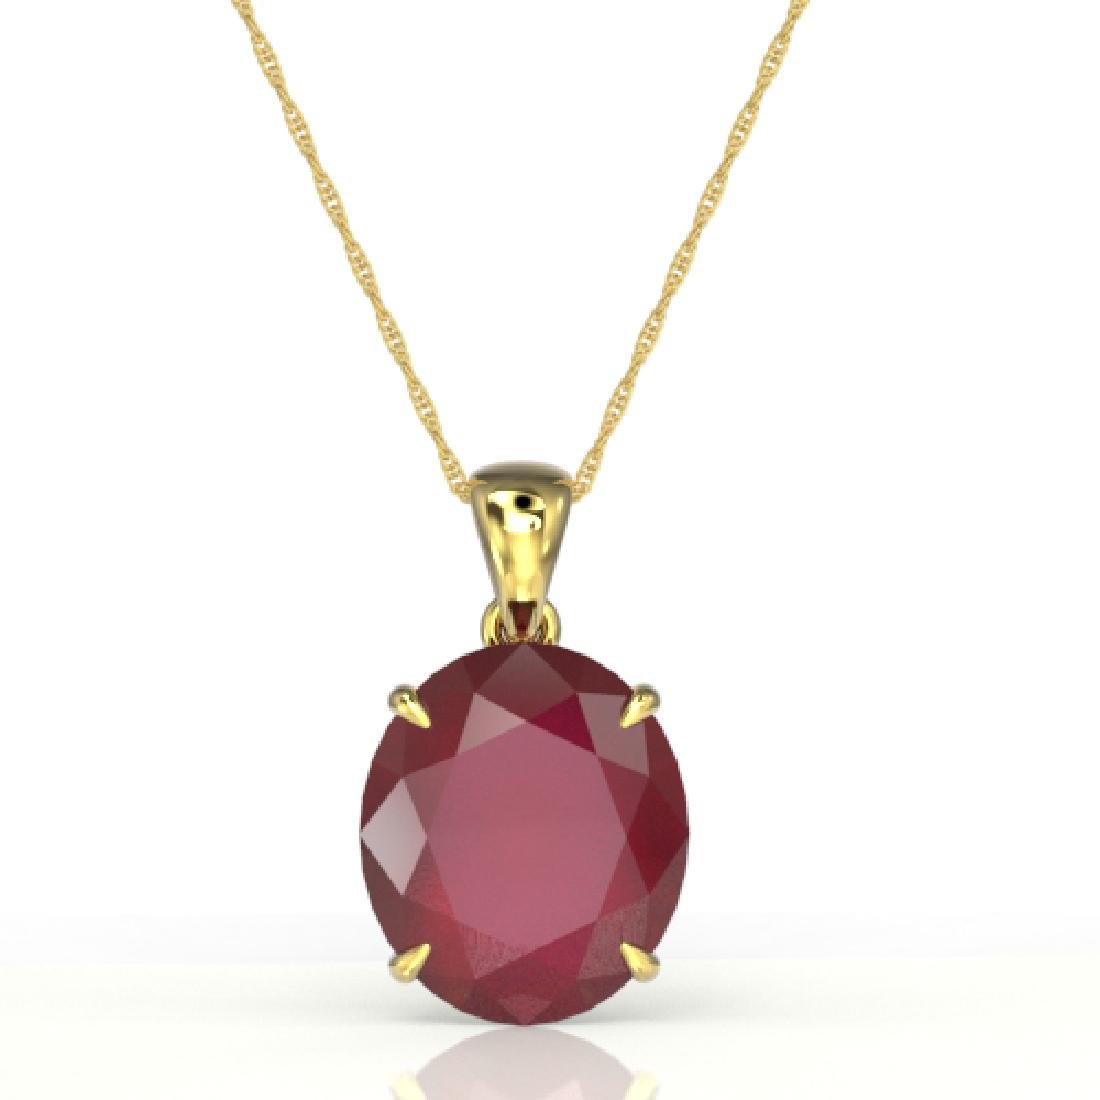 9 CTW Ruby Designer Solitaire Necklace 18K Yellow Gold - 2